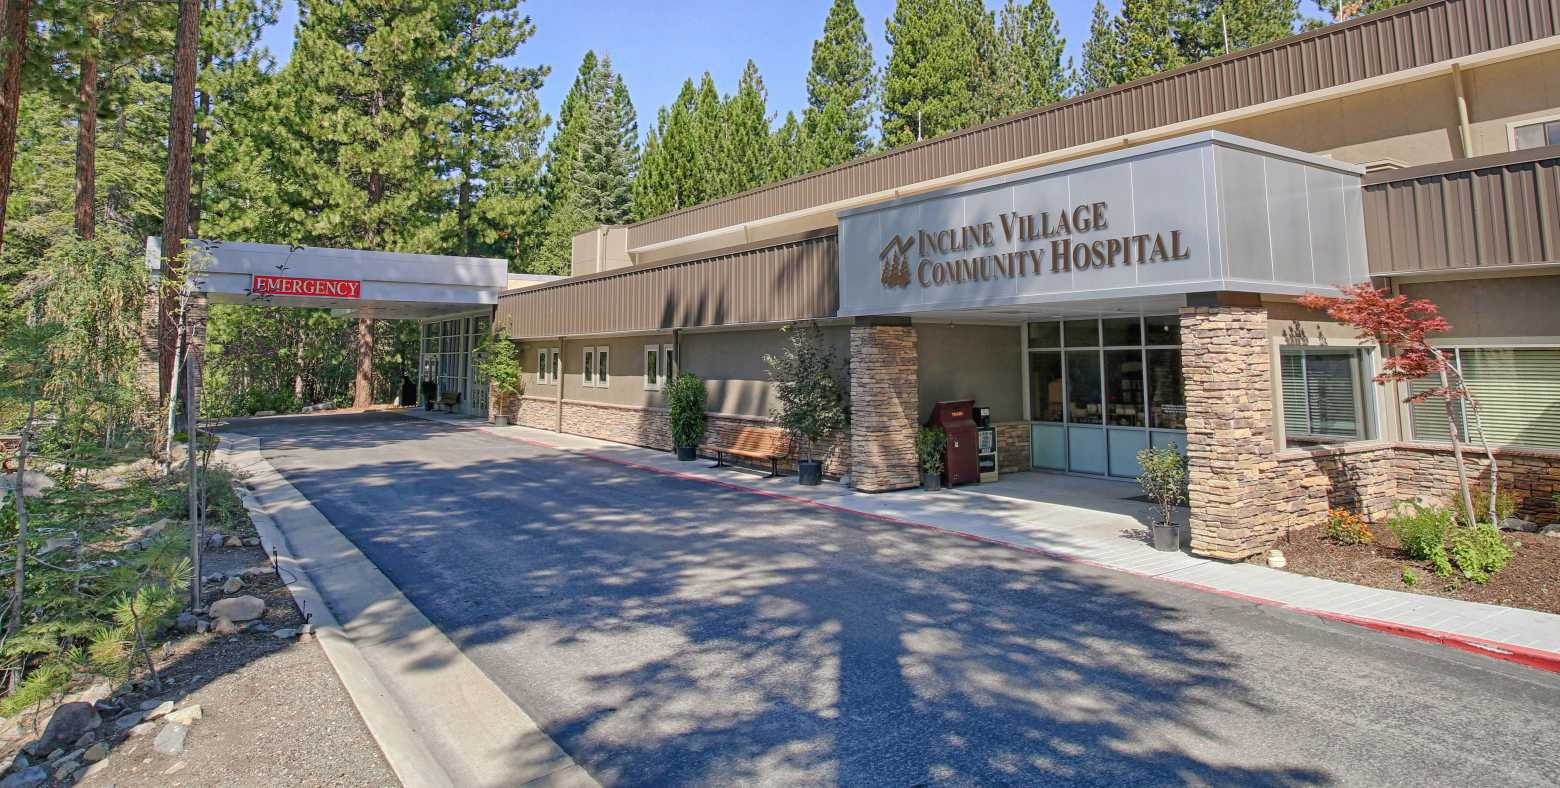 Incline Village Community Hospital, North Lake Tahoe